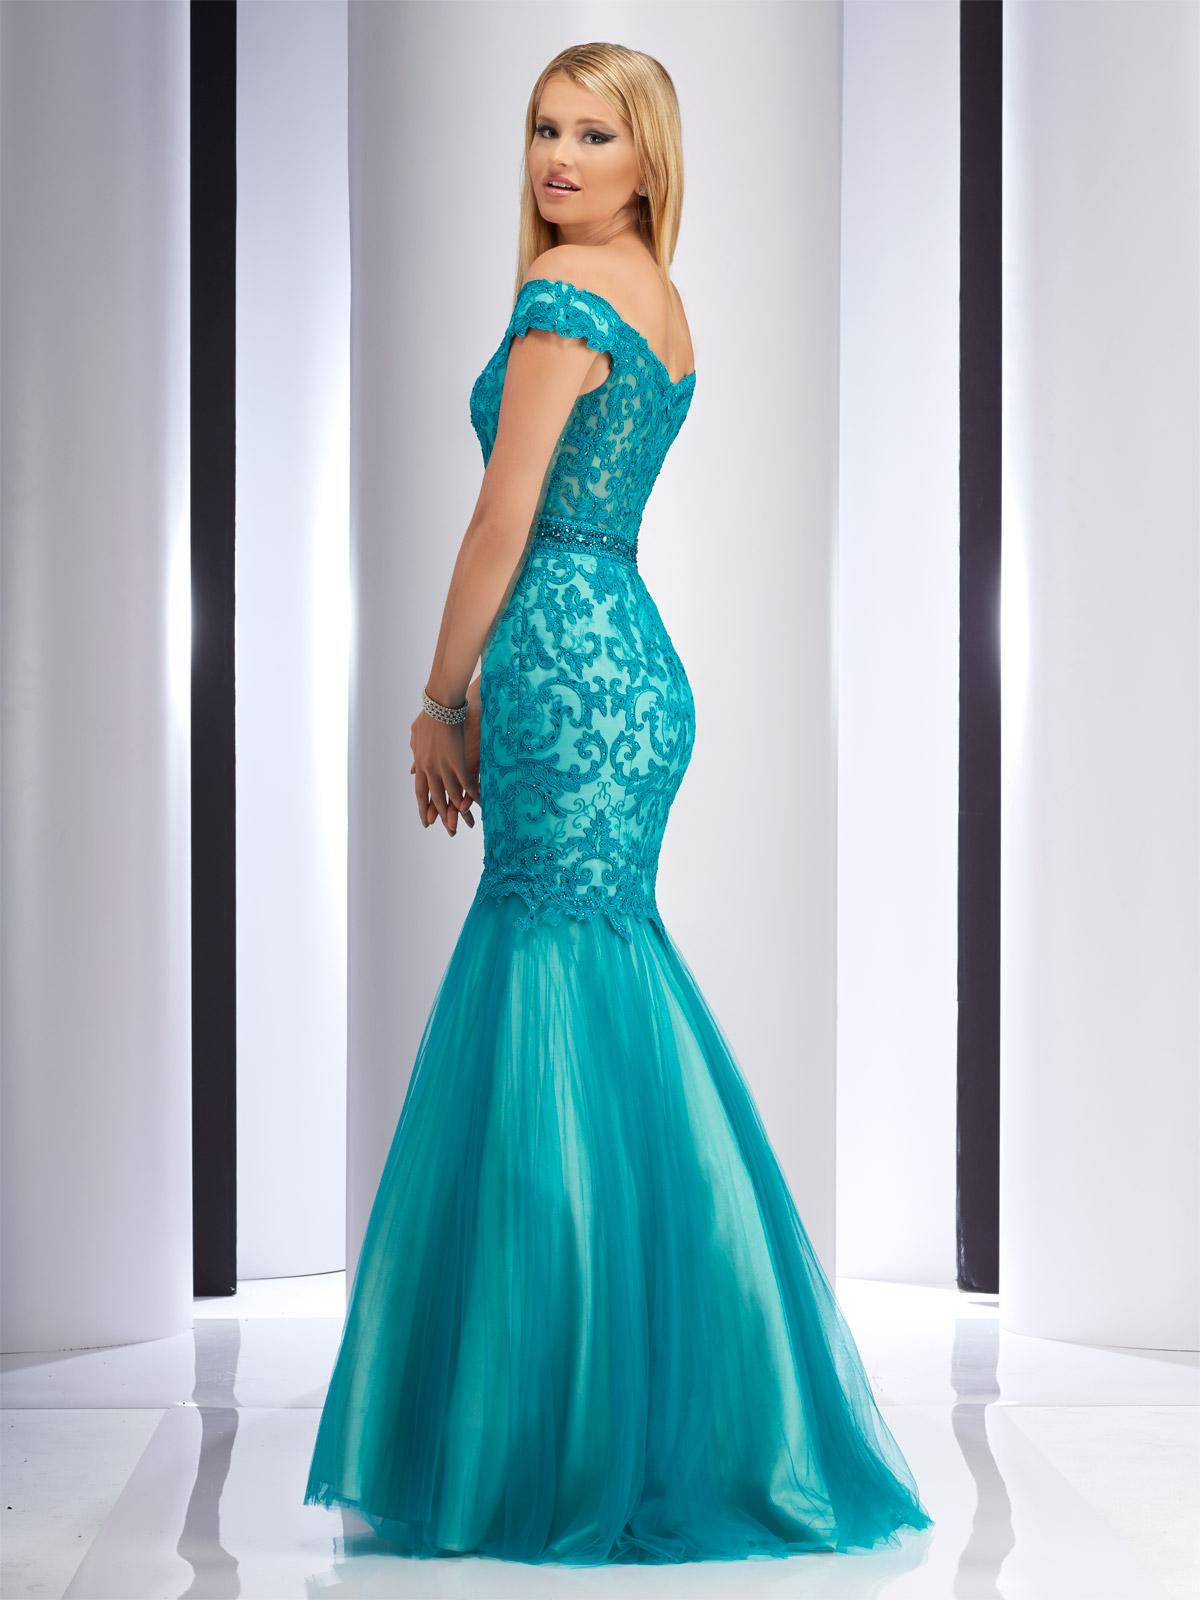 Clarisse 2810 Prom Dress | Promgirl.net